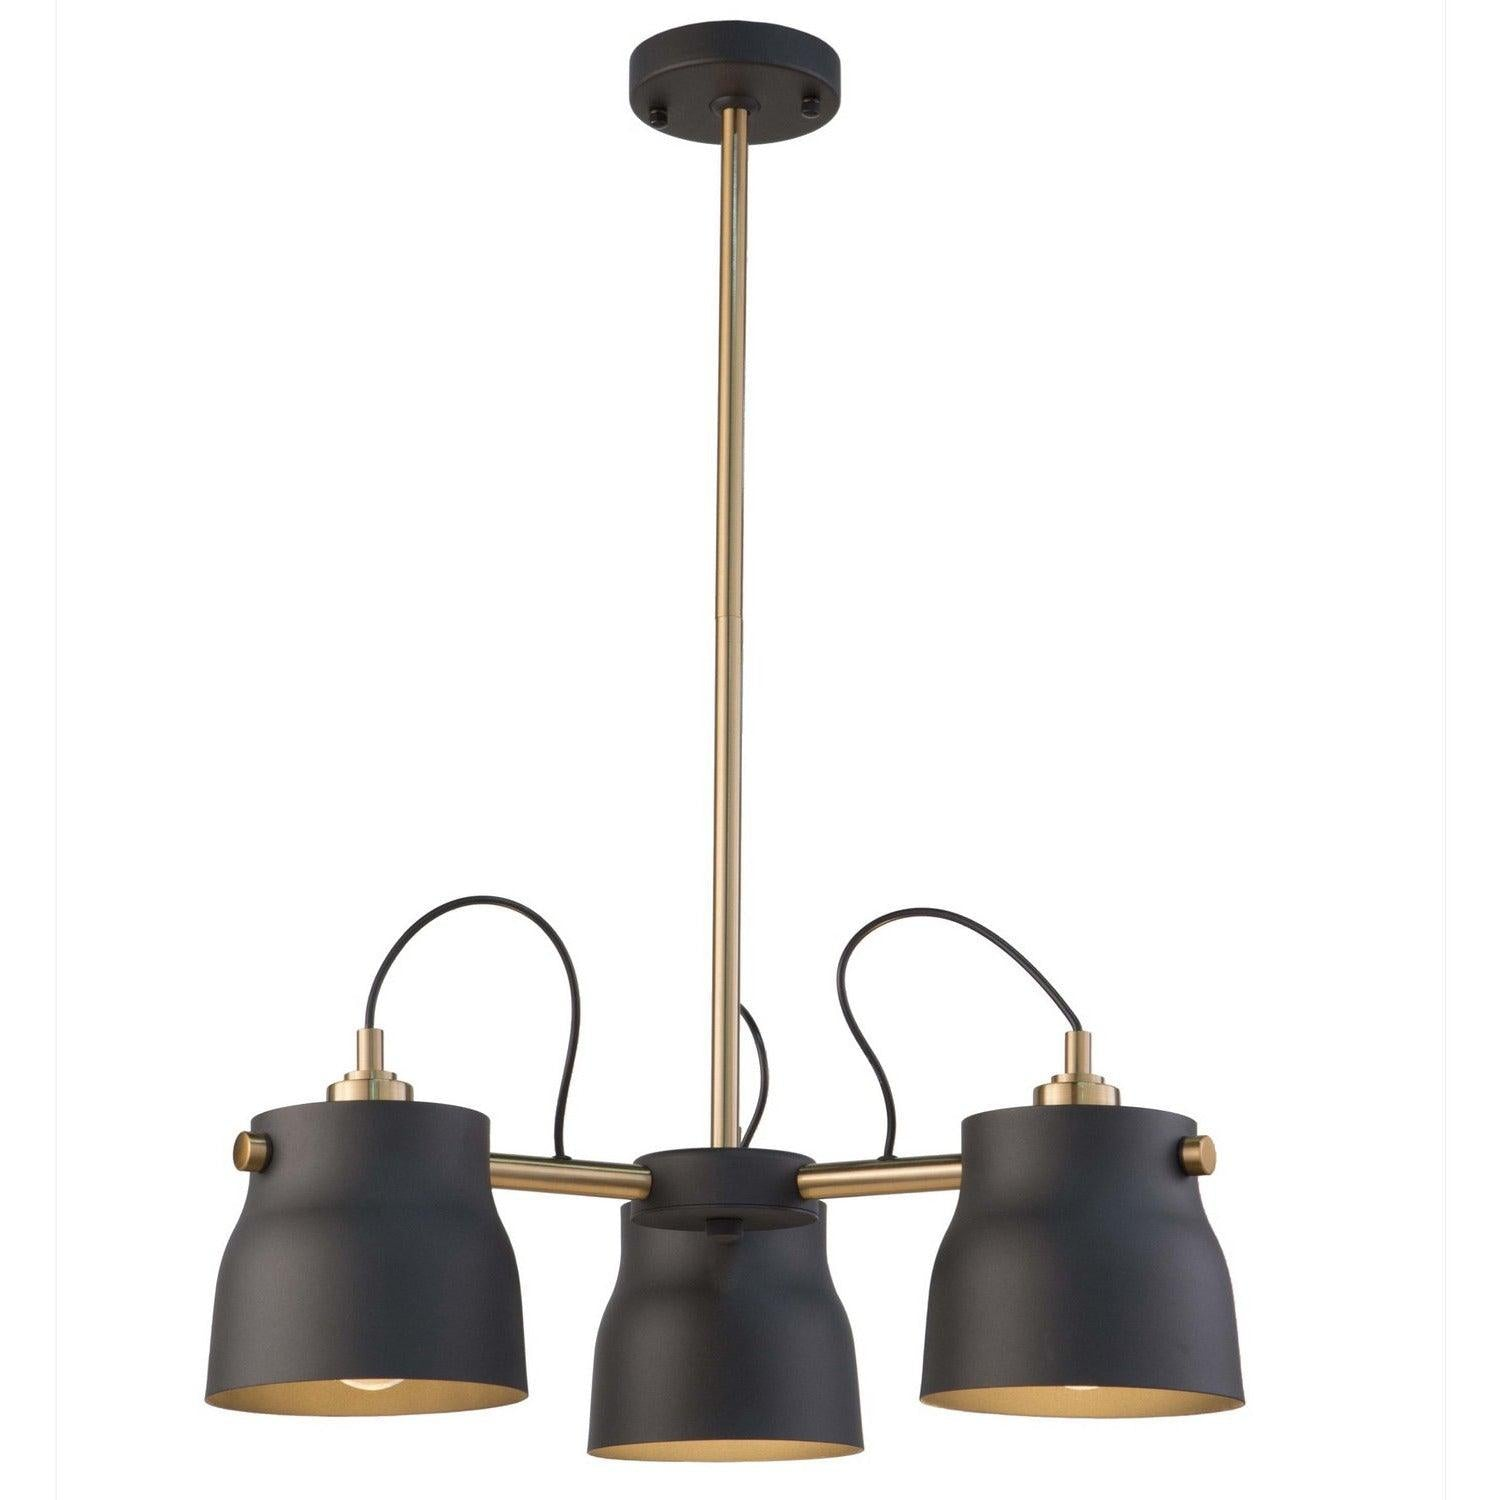 Artcraft Lighting - AC11363VB - Three Light Chandelier - Euro Industrial - Matte Black & Harvest Brass